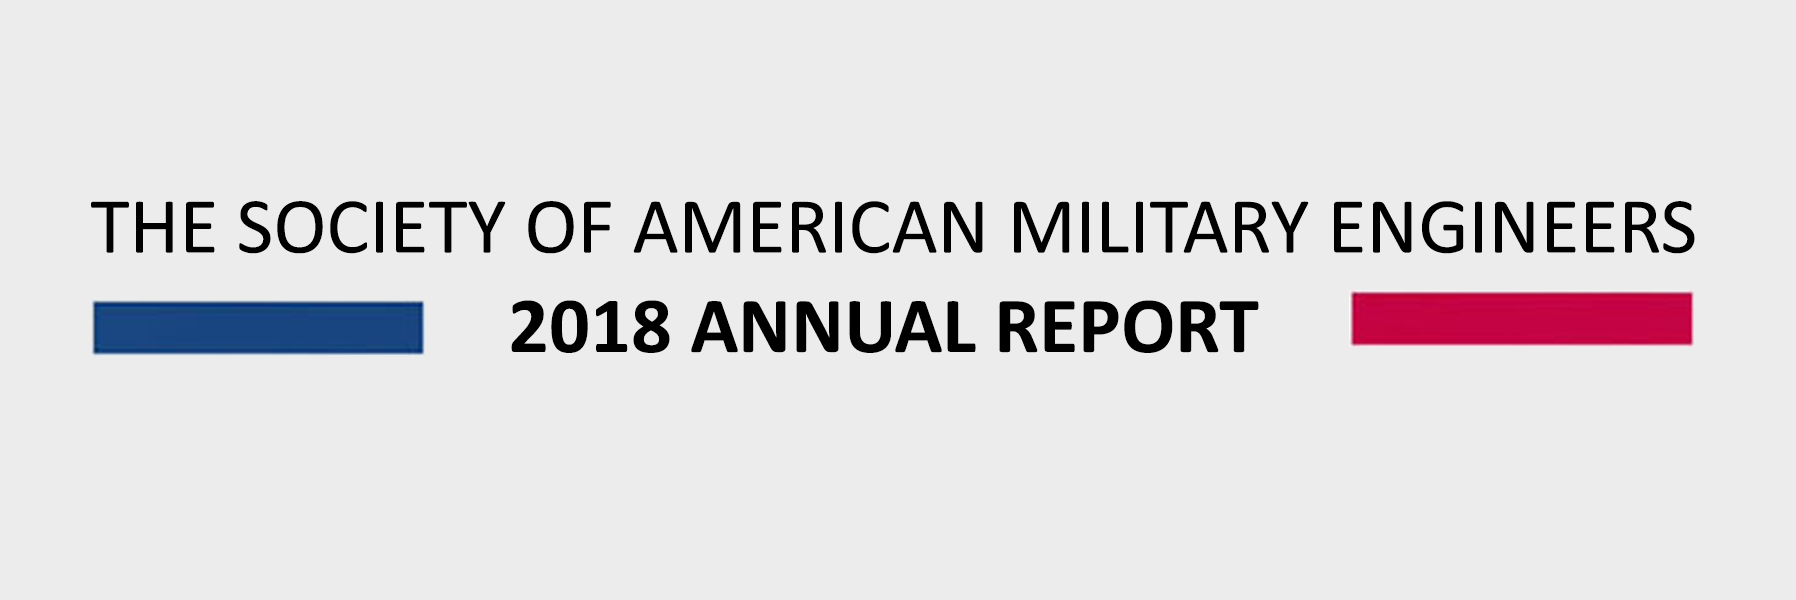 SAME 2019 Annual Report